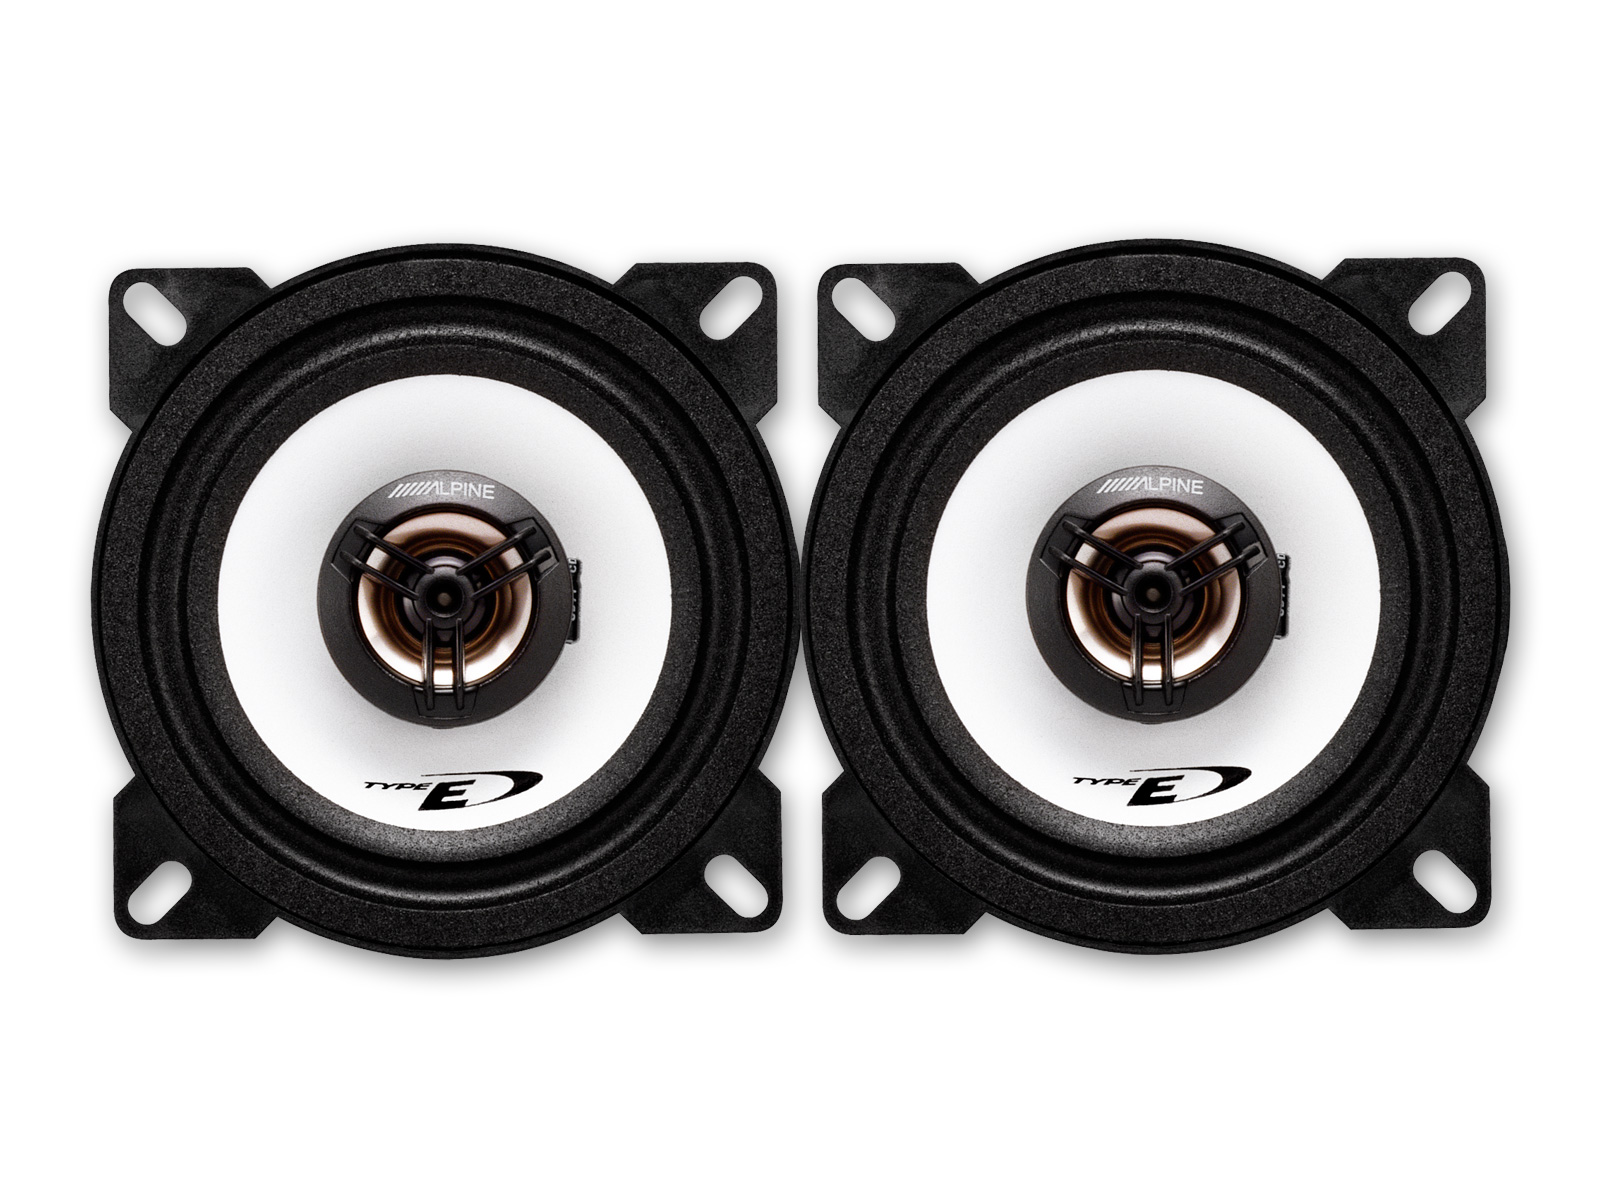 http://italy.alpine-europe.com/fileadmin/images/MainNavigation/Products/Product_pics/14_Speakers/06_CustomFit_Speakers/SXE1025S/productpic_SXE1025S_01.jpg